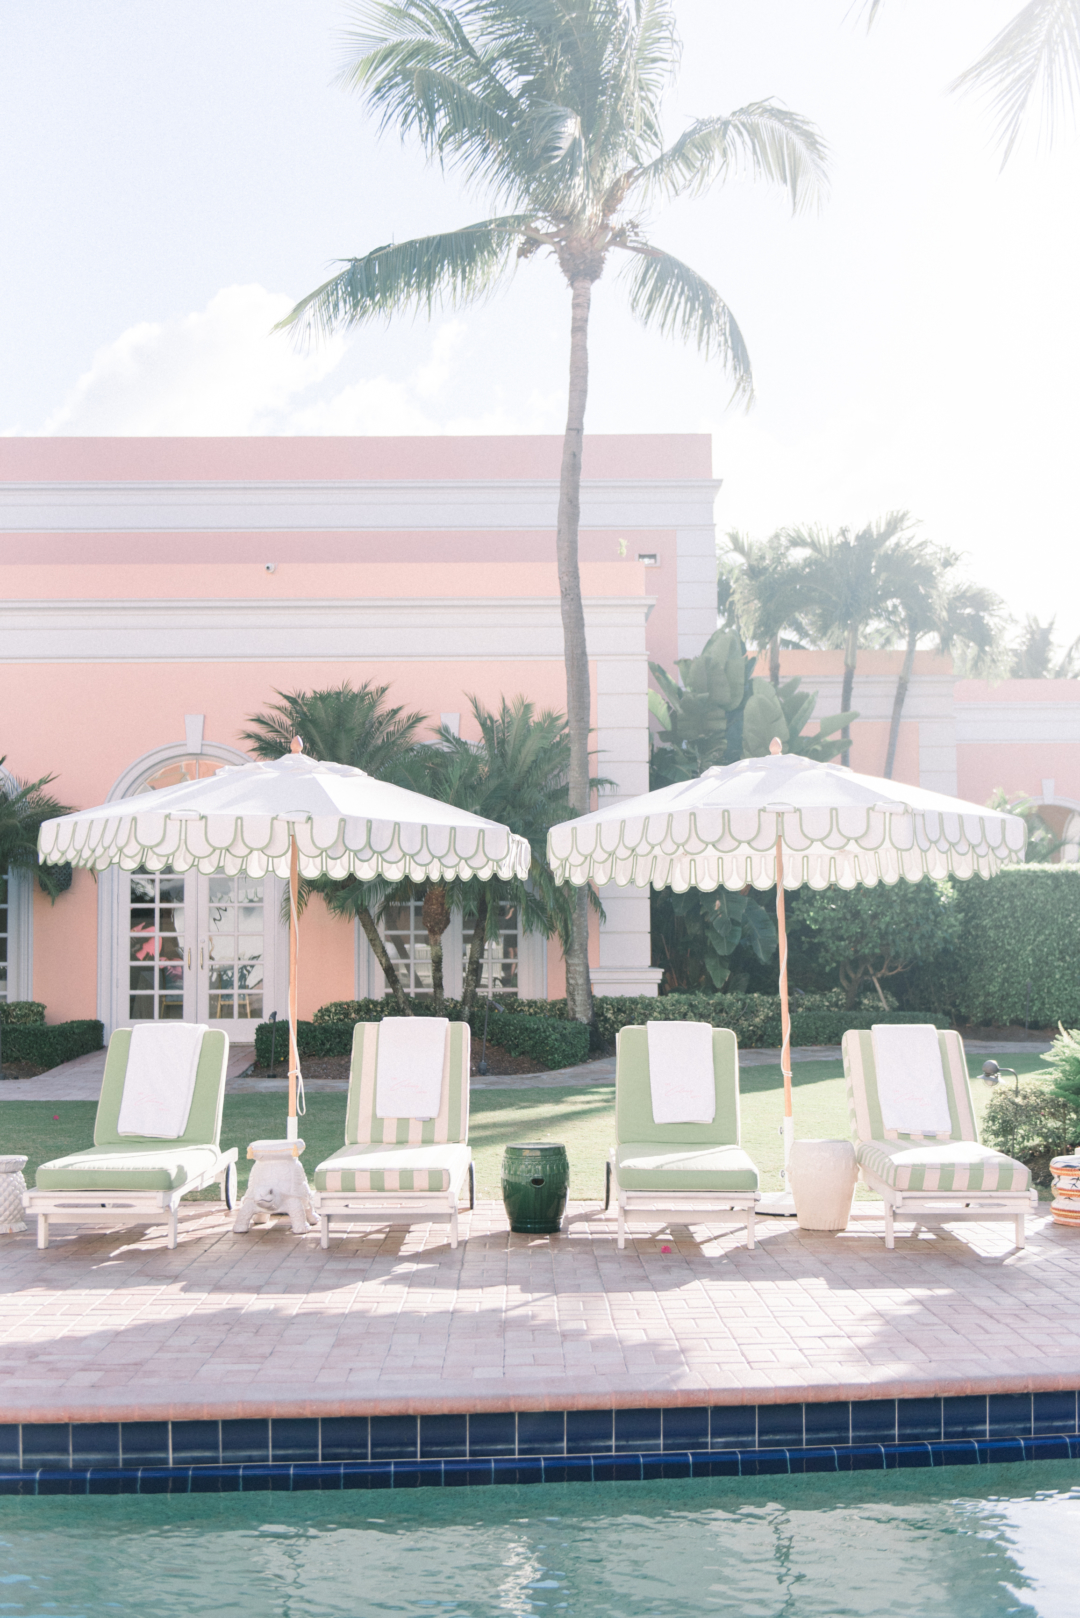 The Colony Hotel in Palm Beach Lately's Travel Guide to Palm Beach